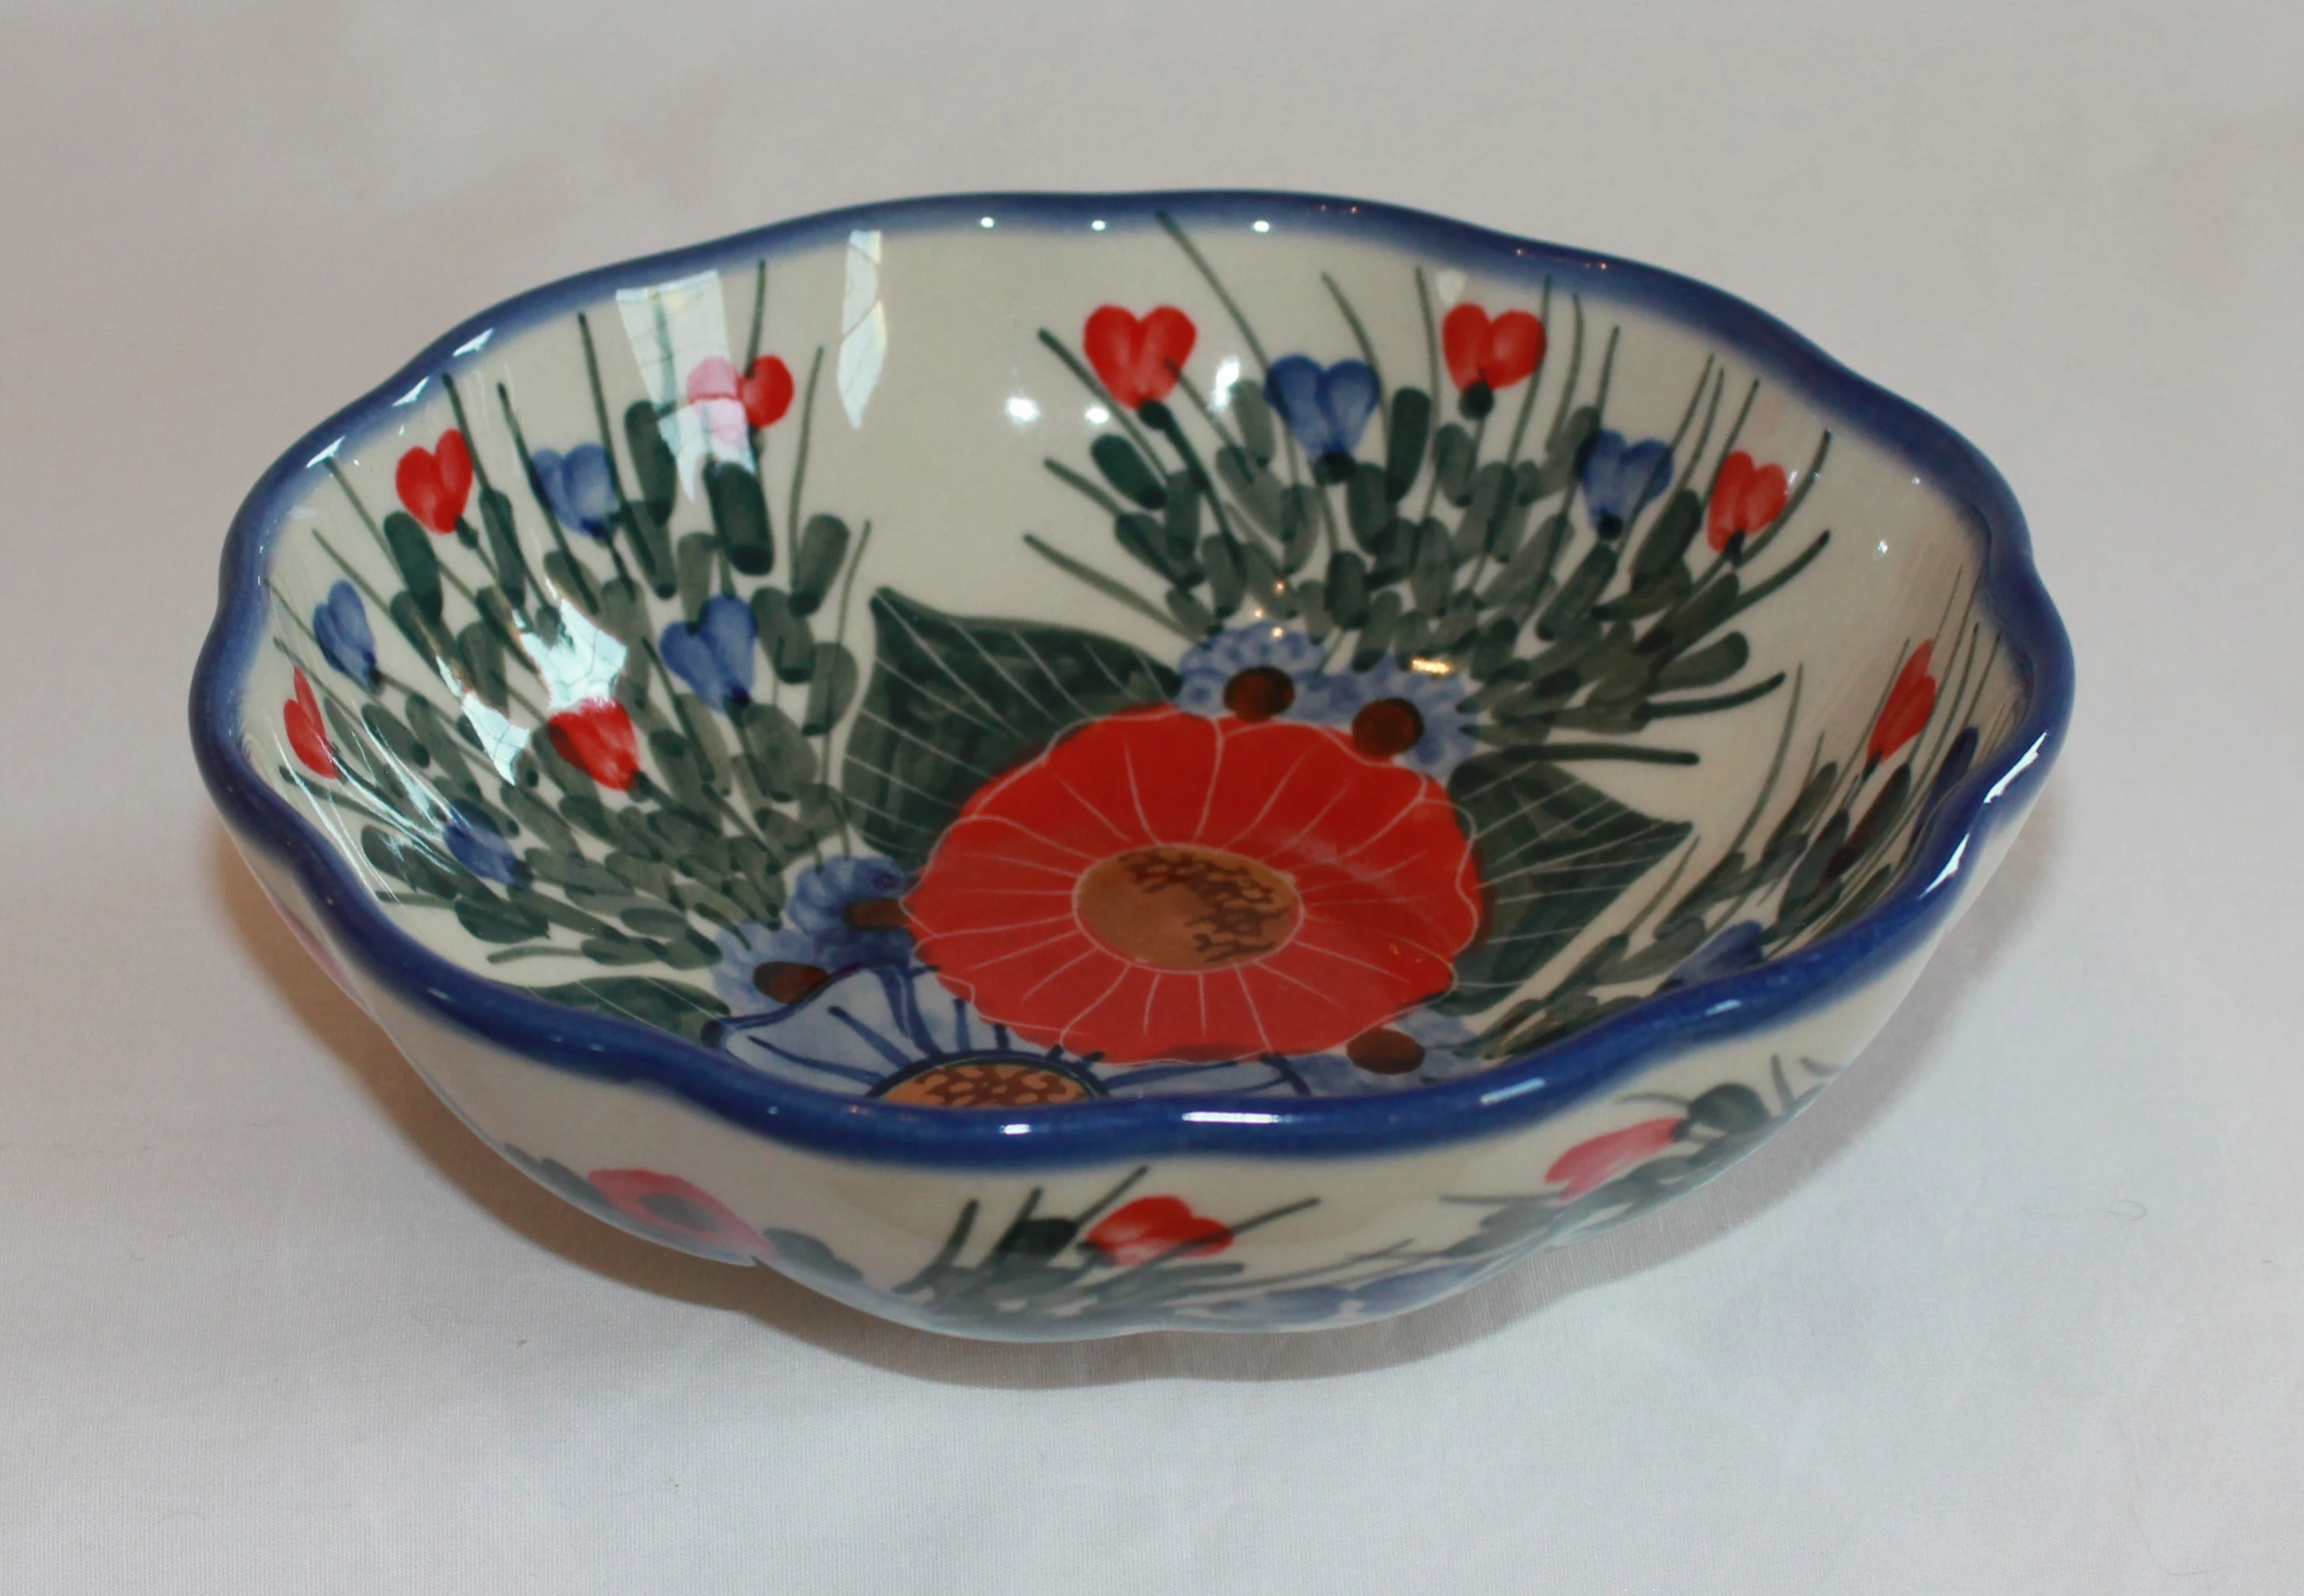 Flower Bowl II